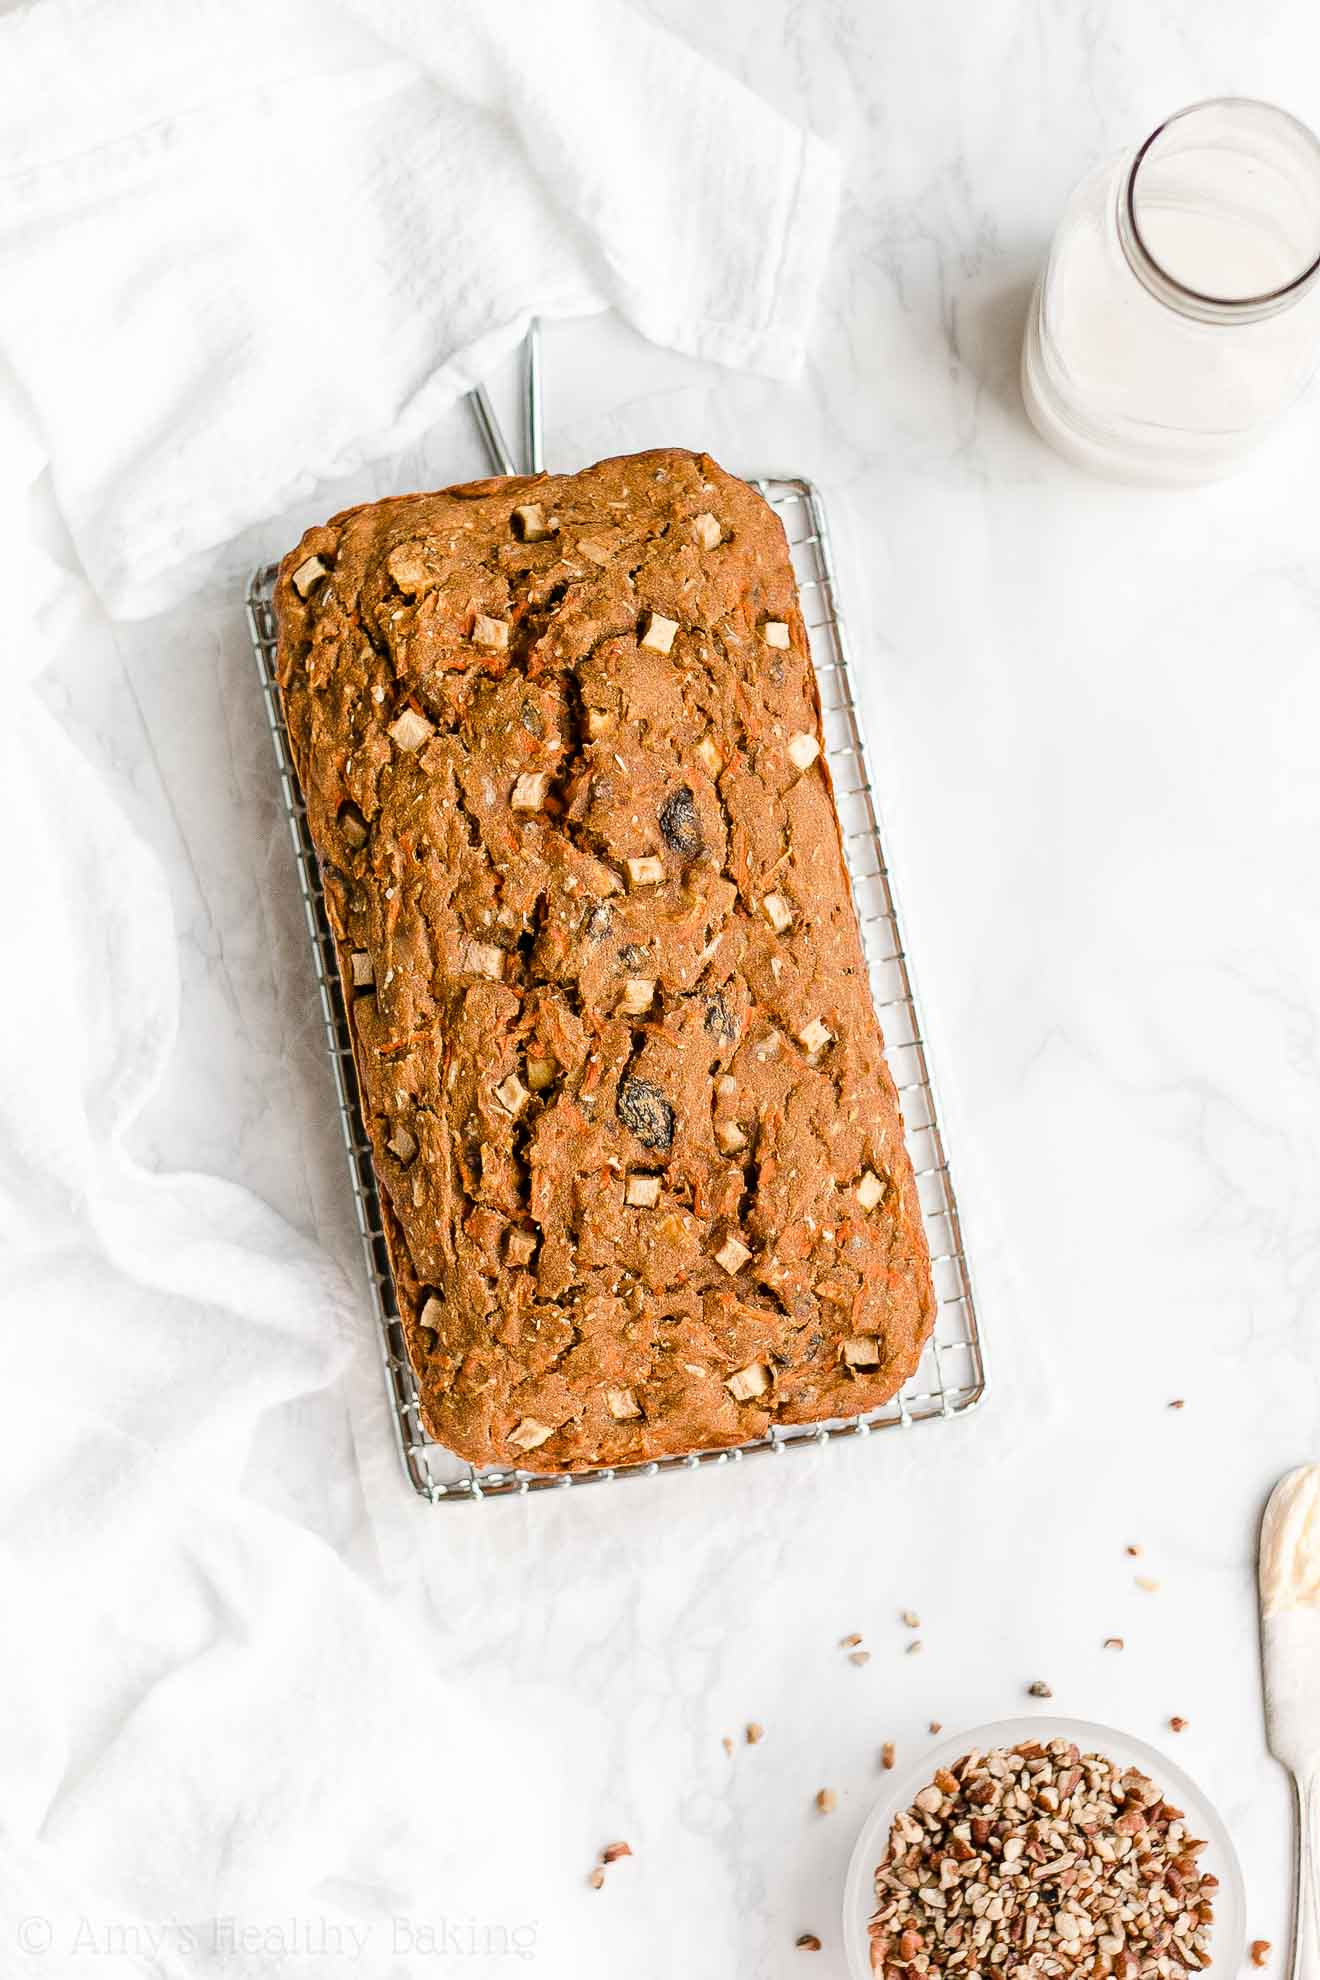 Easy Healthy Whole Wheat Low Calorie Morning Glory Pumpkin Bread